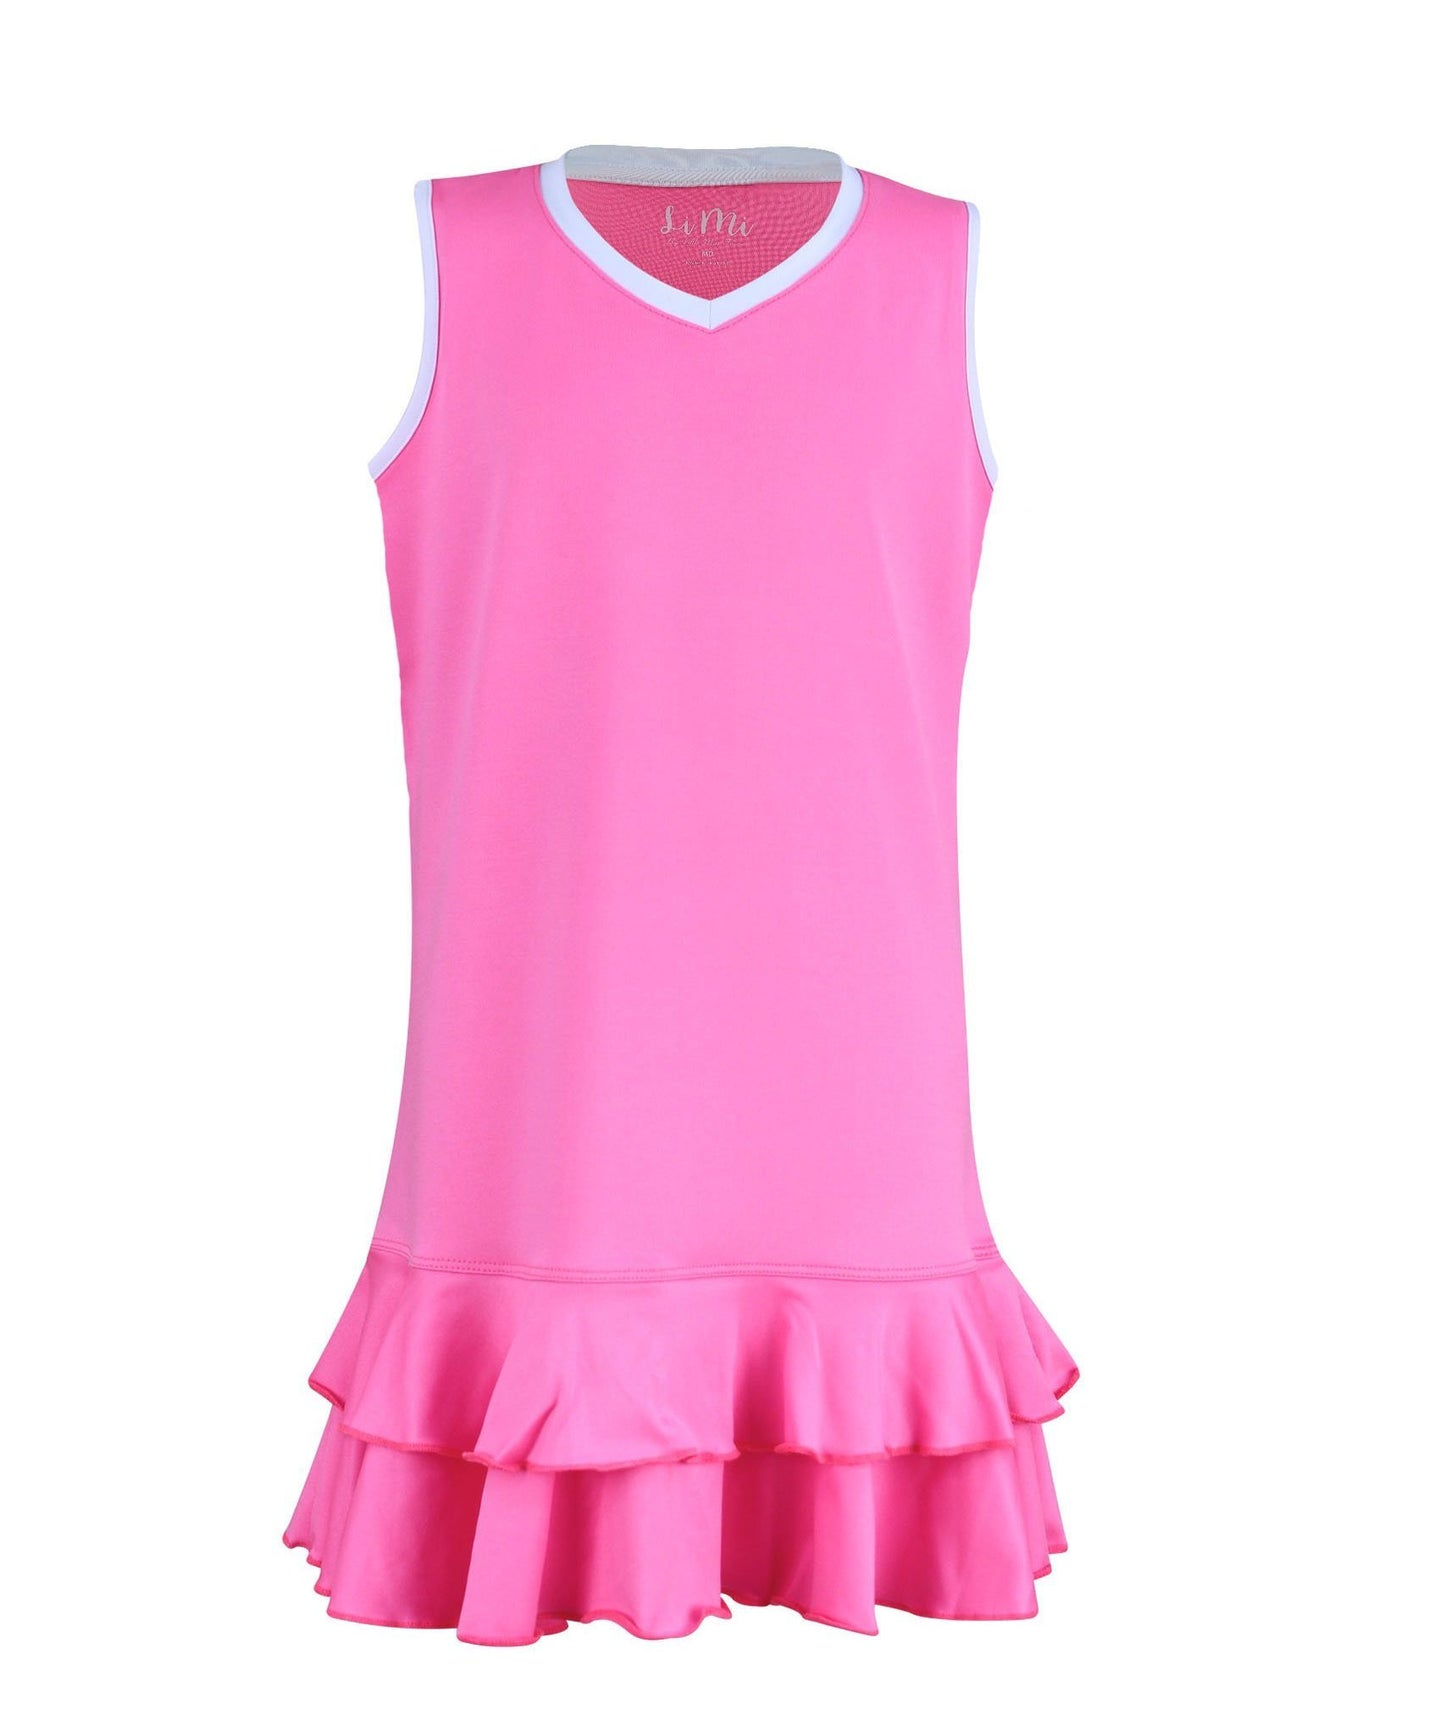 Little Miss Tennis Ruffle Dress BKP12